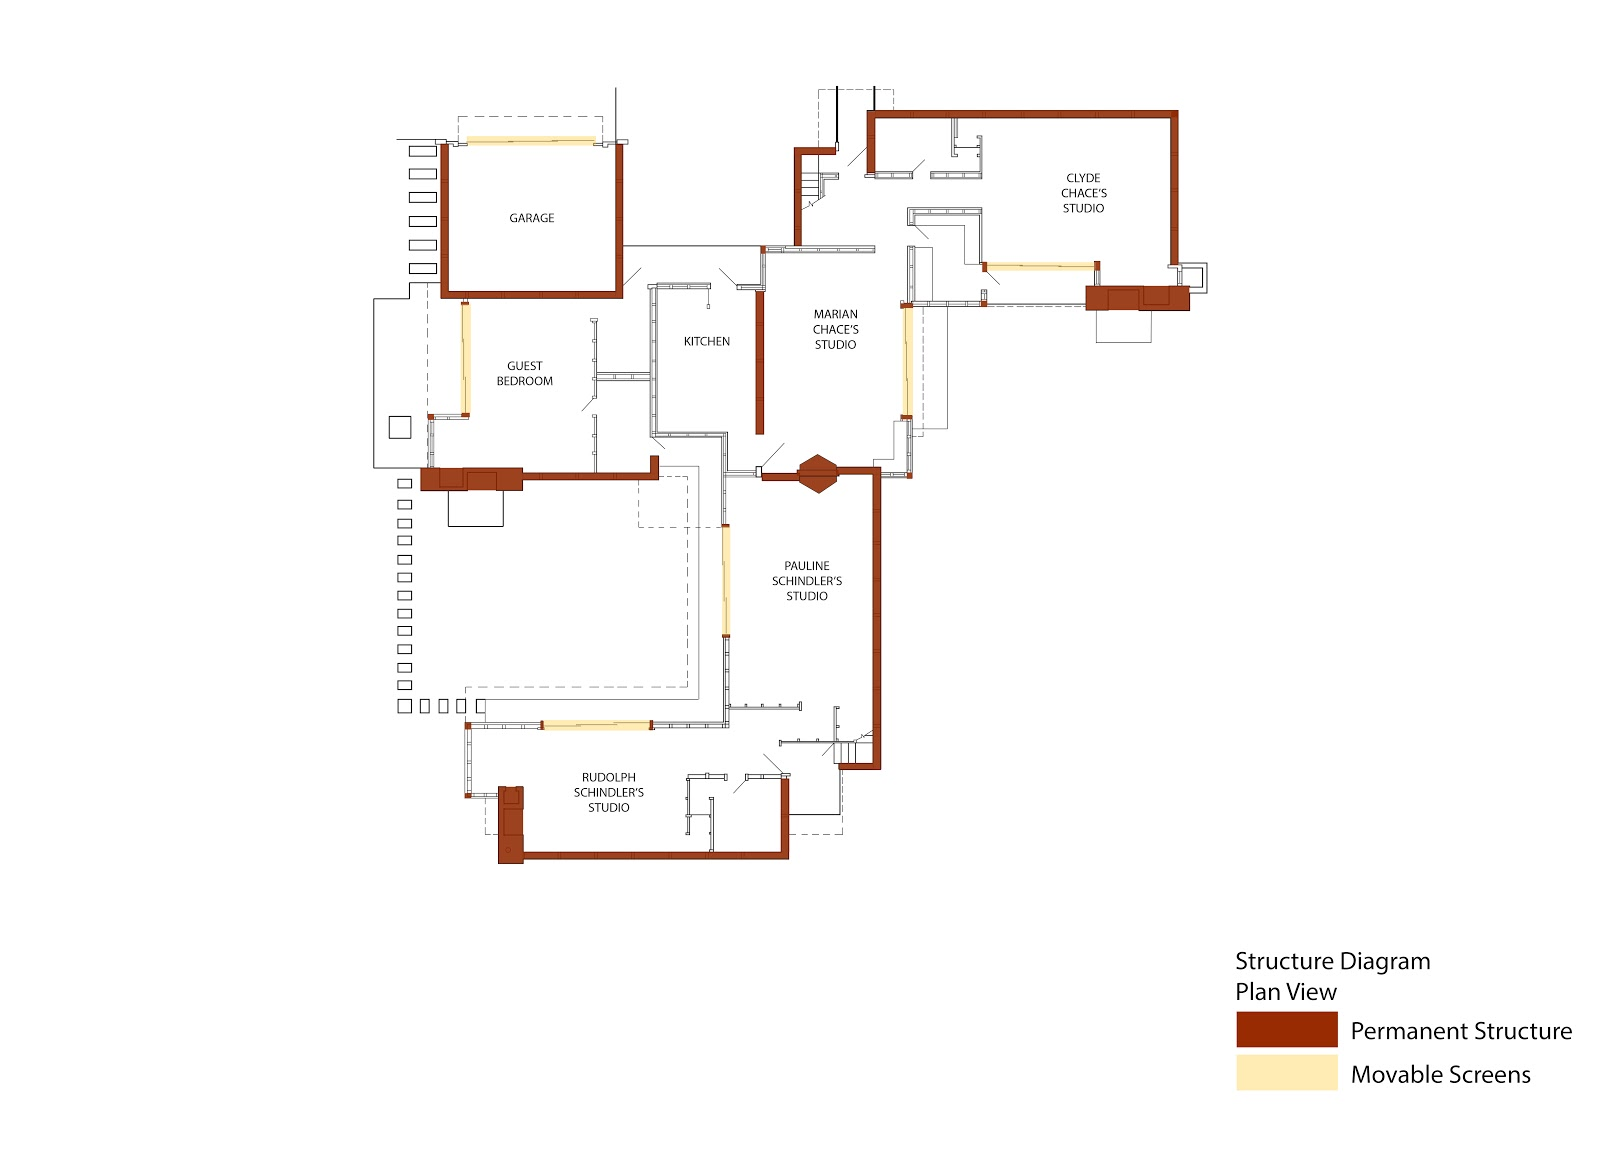 SchindlerChace House: Explanatory Diagrams